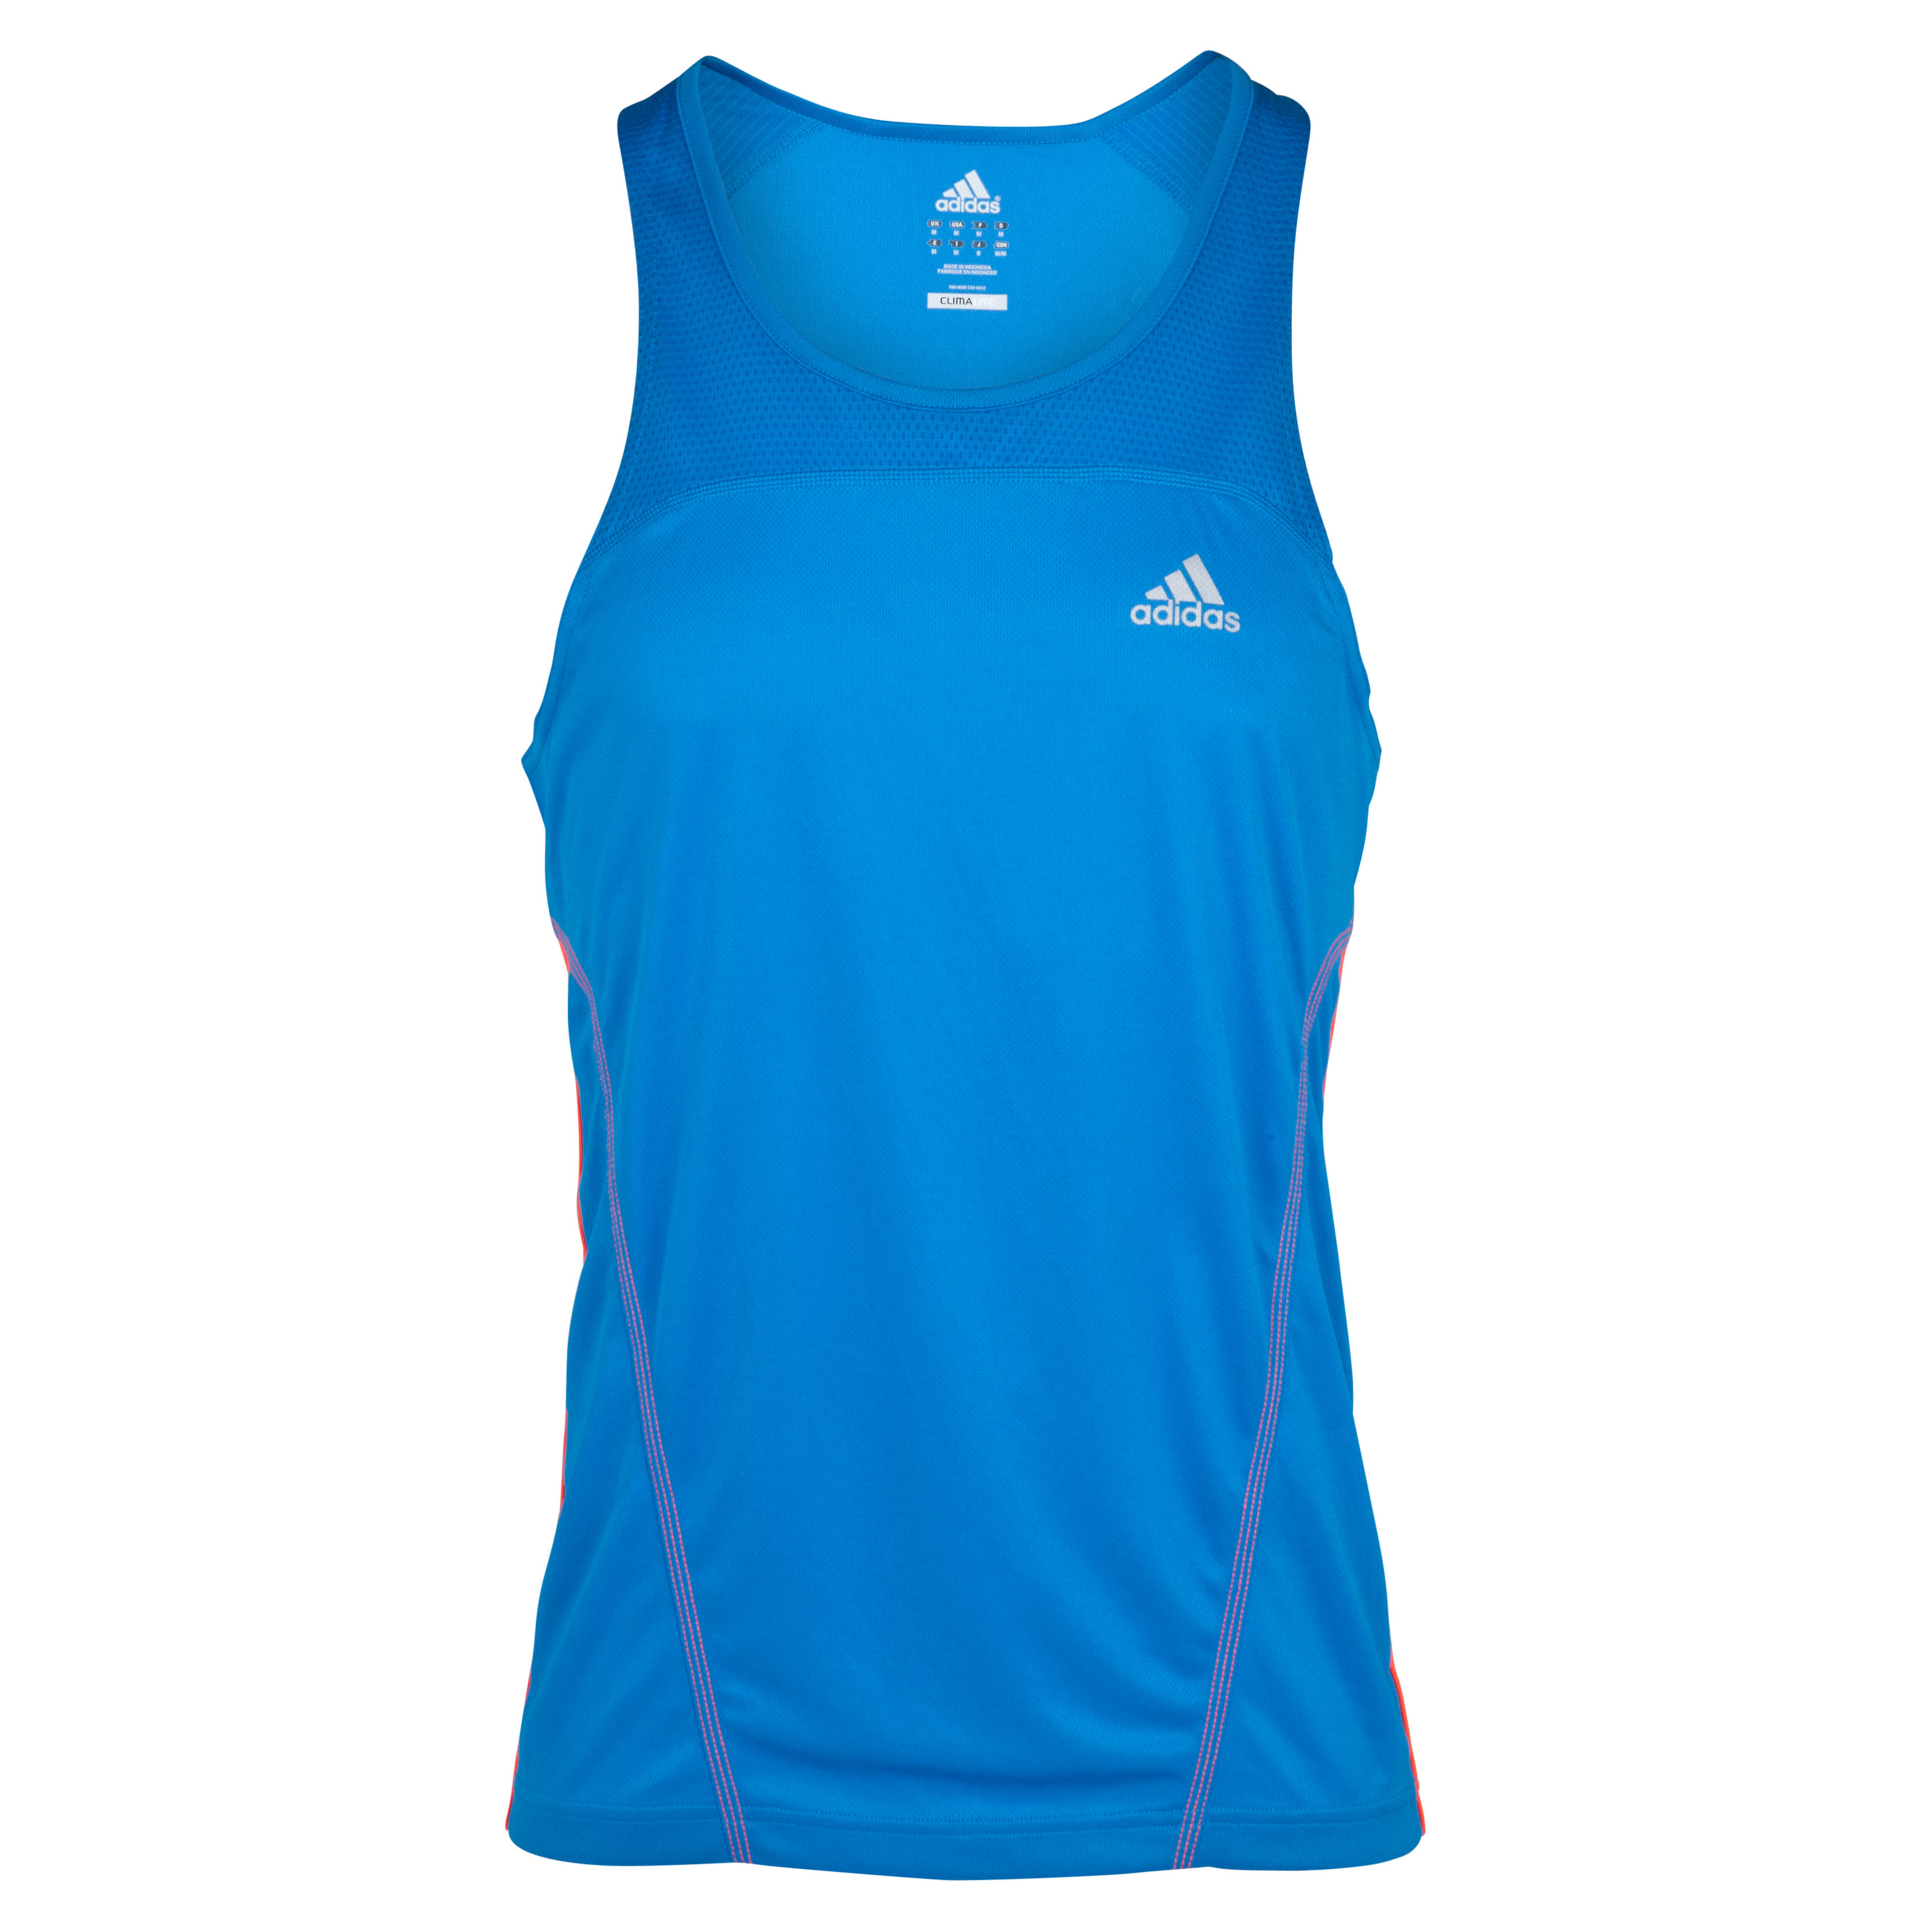 Adidas Response DS Singlet Vest - Bright Blue/Infrared